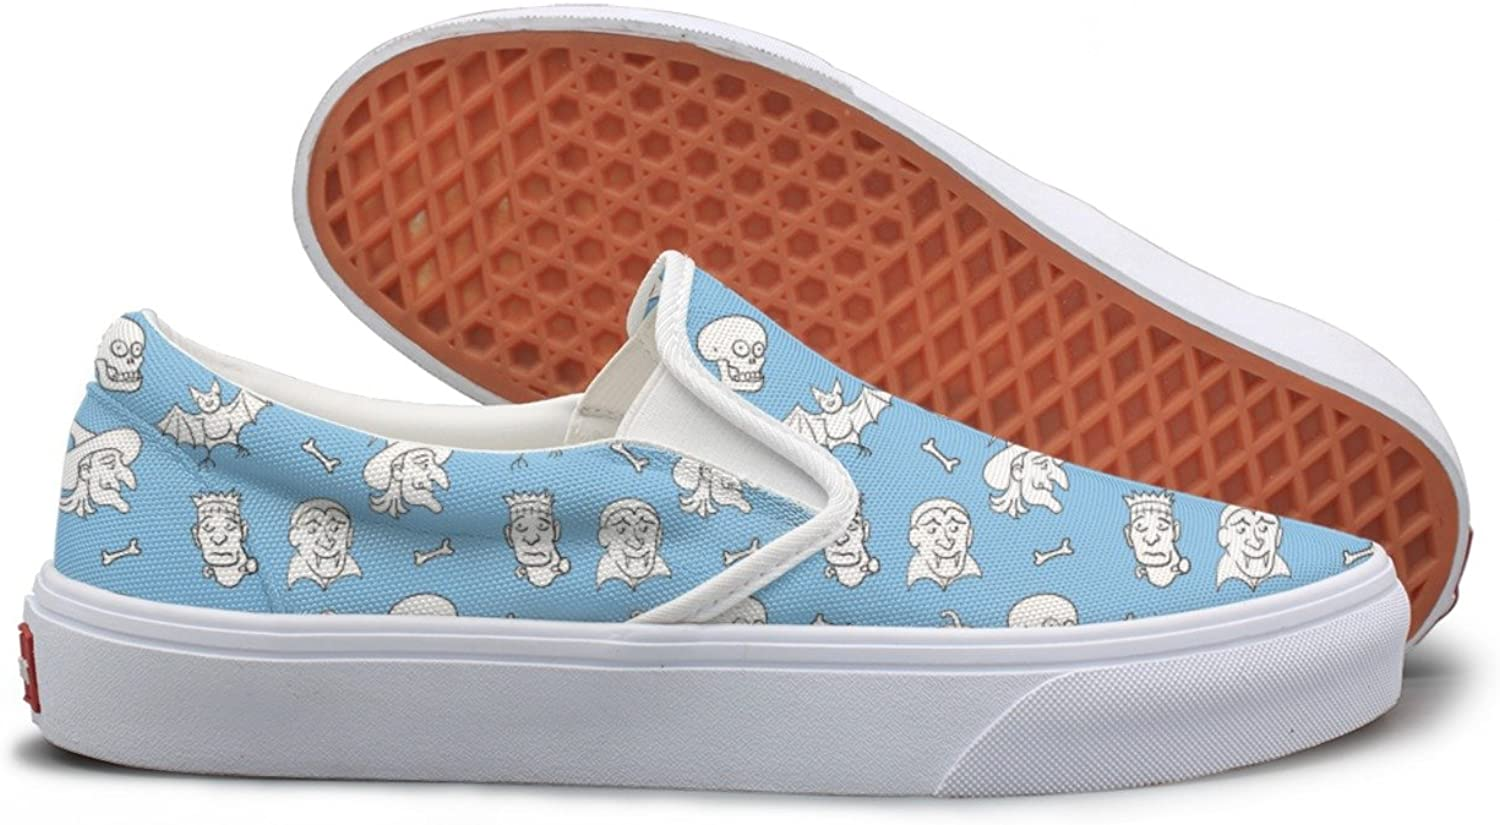 Skulls Halloween Fun Pattern Comfortable Sneakers For Standing All Day